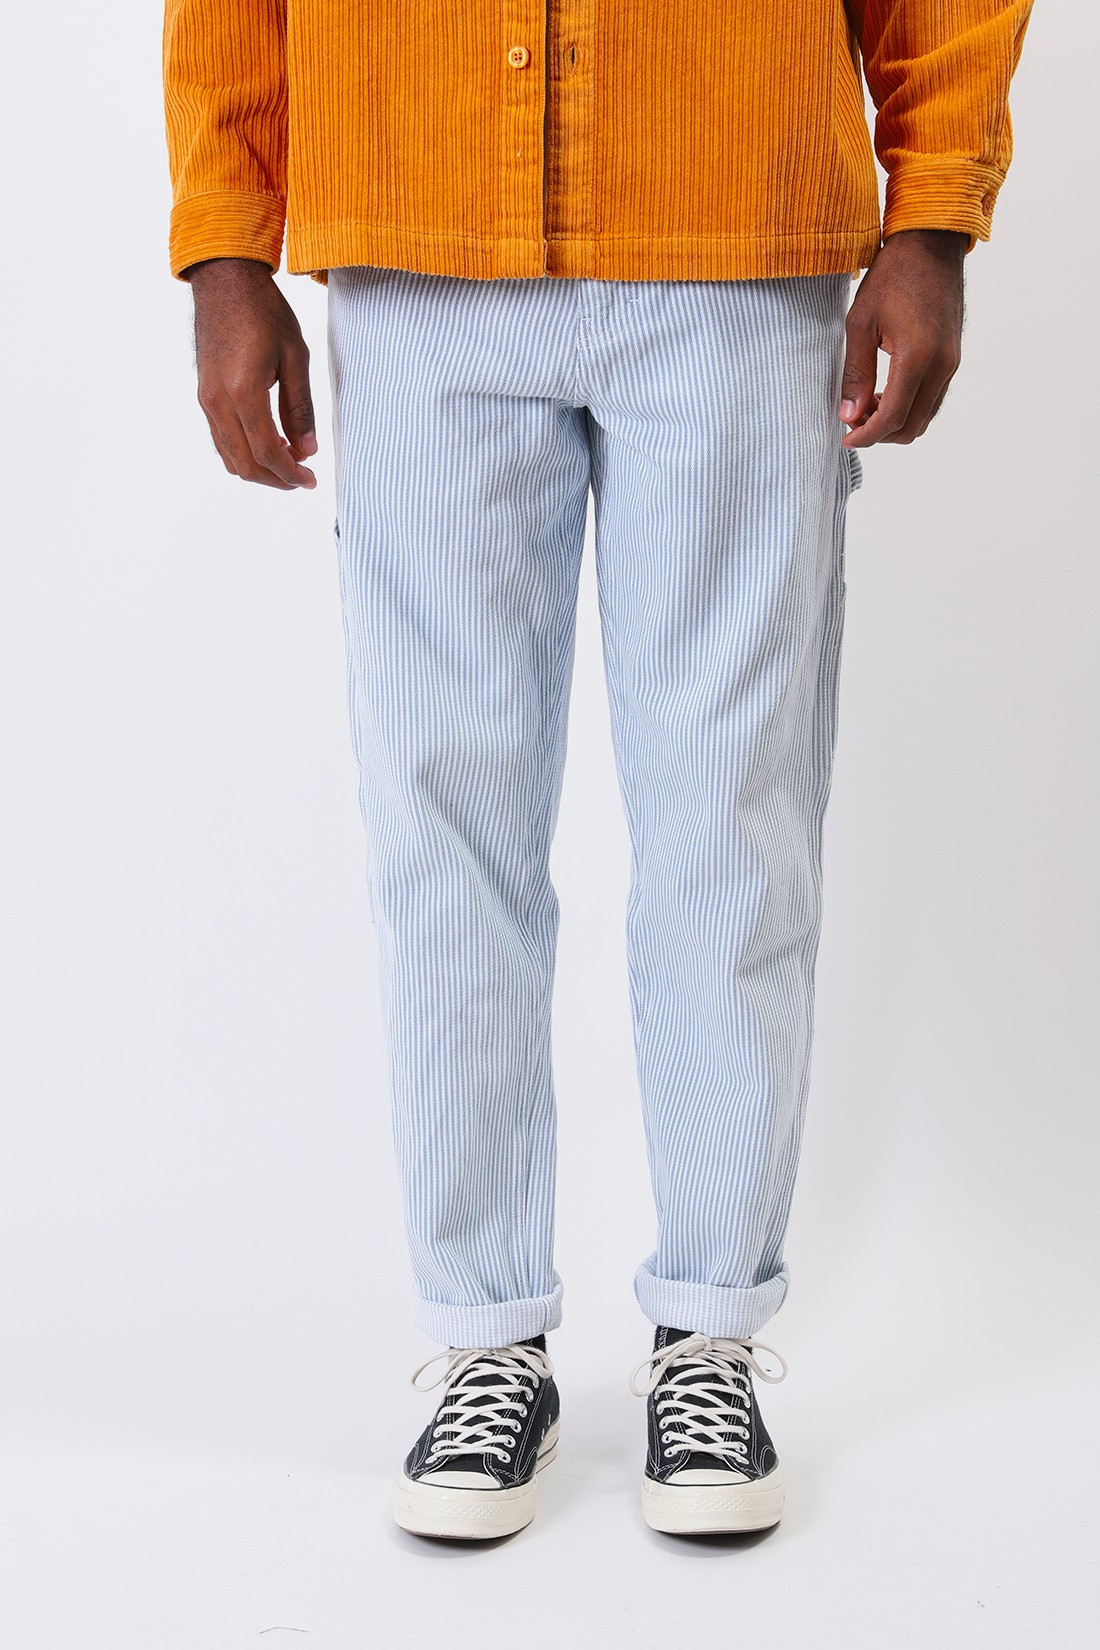 STAN RAY / 80s painter pant Worn hickory